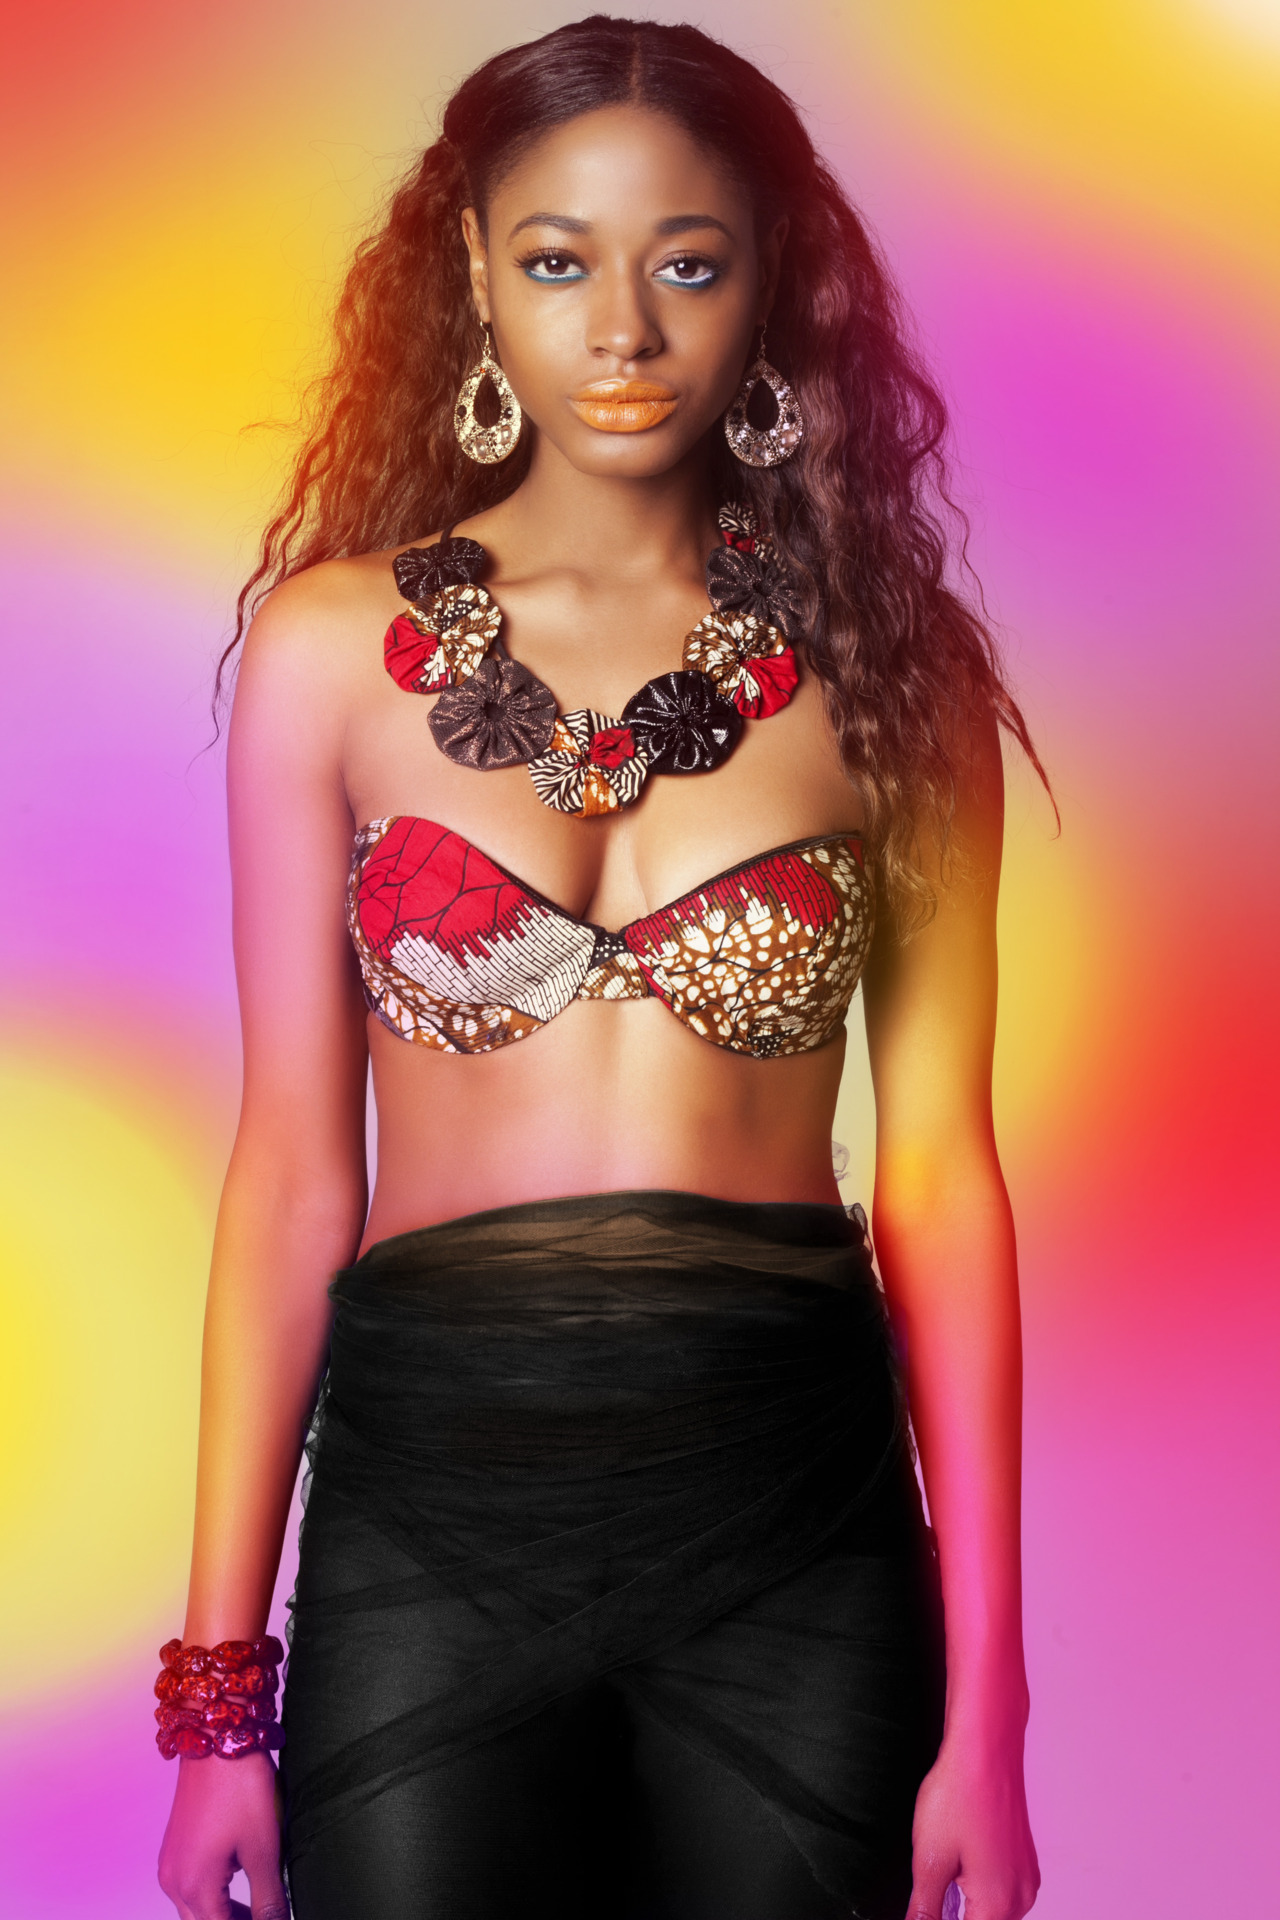 blackfashion:  FLASH SALE!!!! Shop  HVS Tribal Print Fancy Bra original price $85.99 Now $60.00 till Thursday  June 14th  + free shipping shop this deal @ www.bybukolaare.com